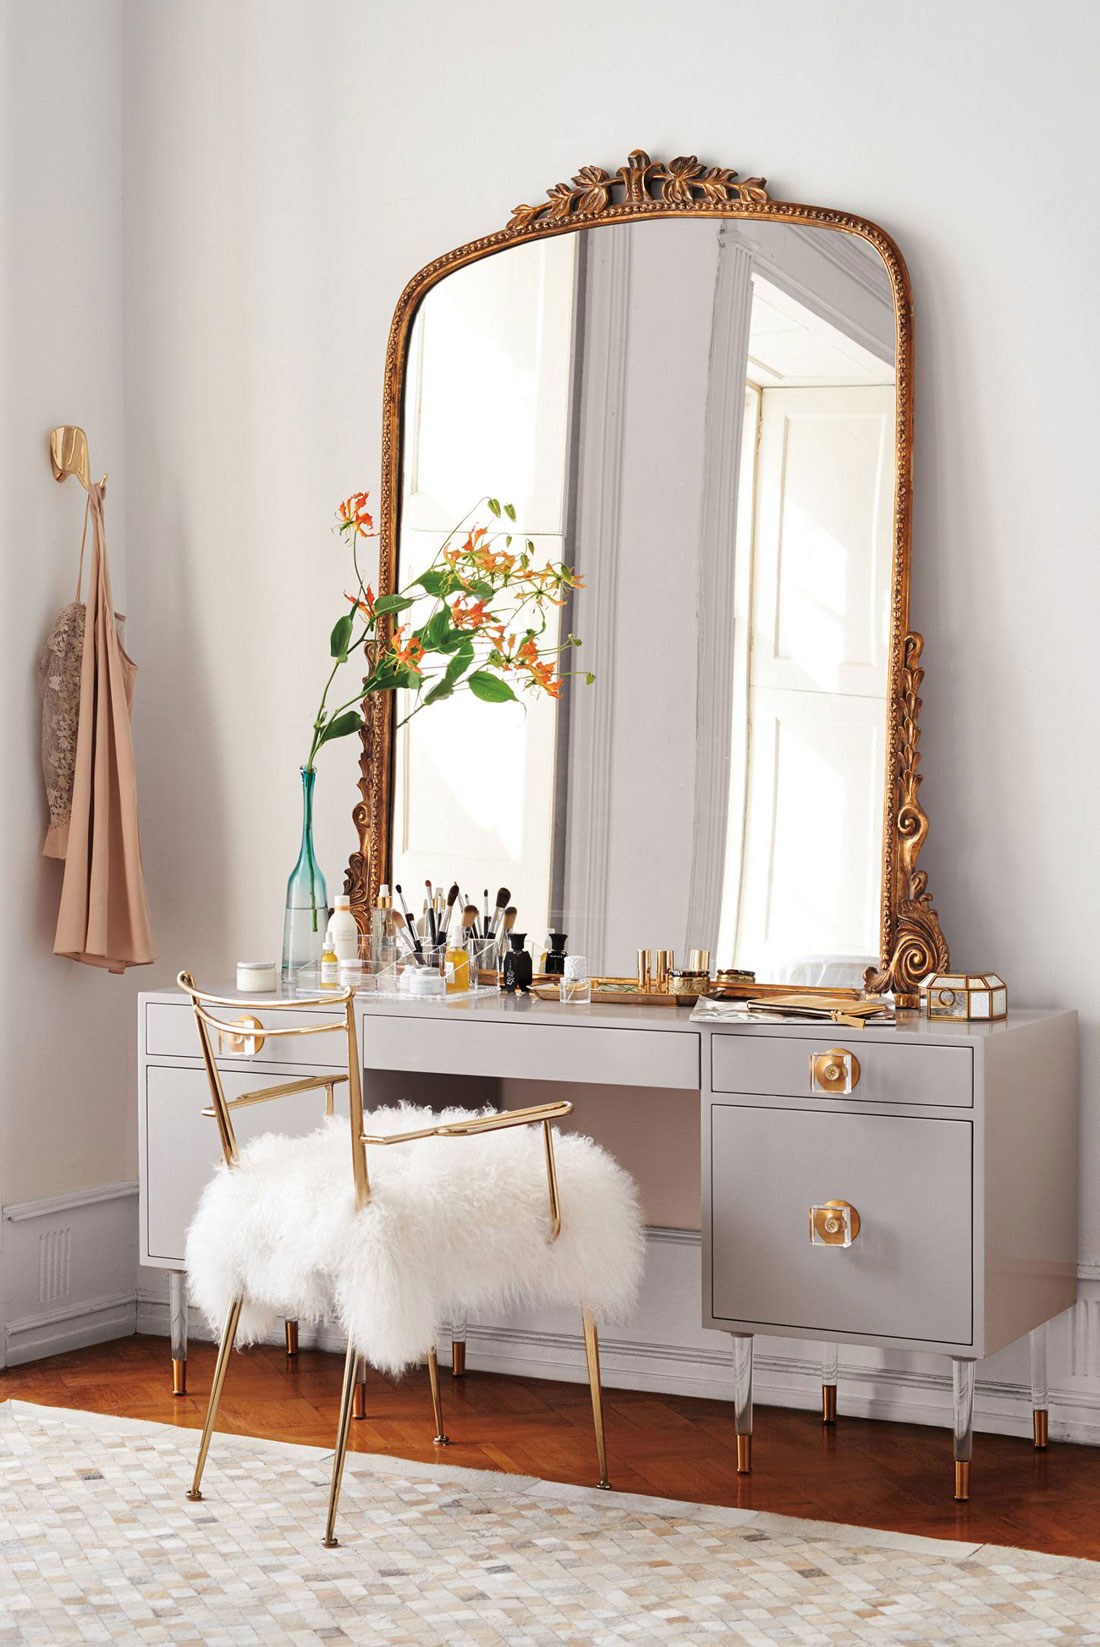 Small grey vanity with oversized vintage gold mirror